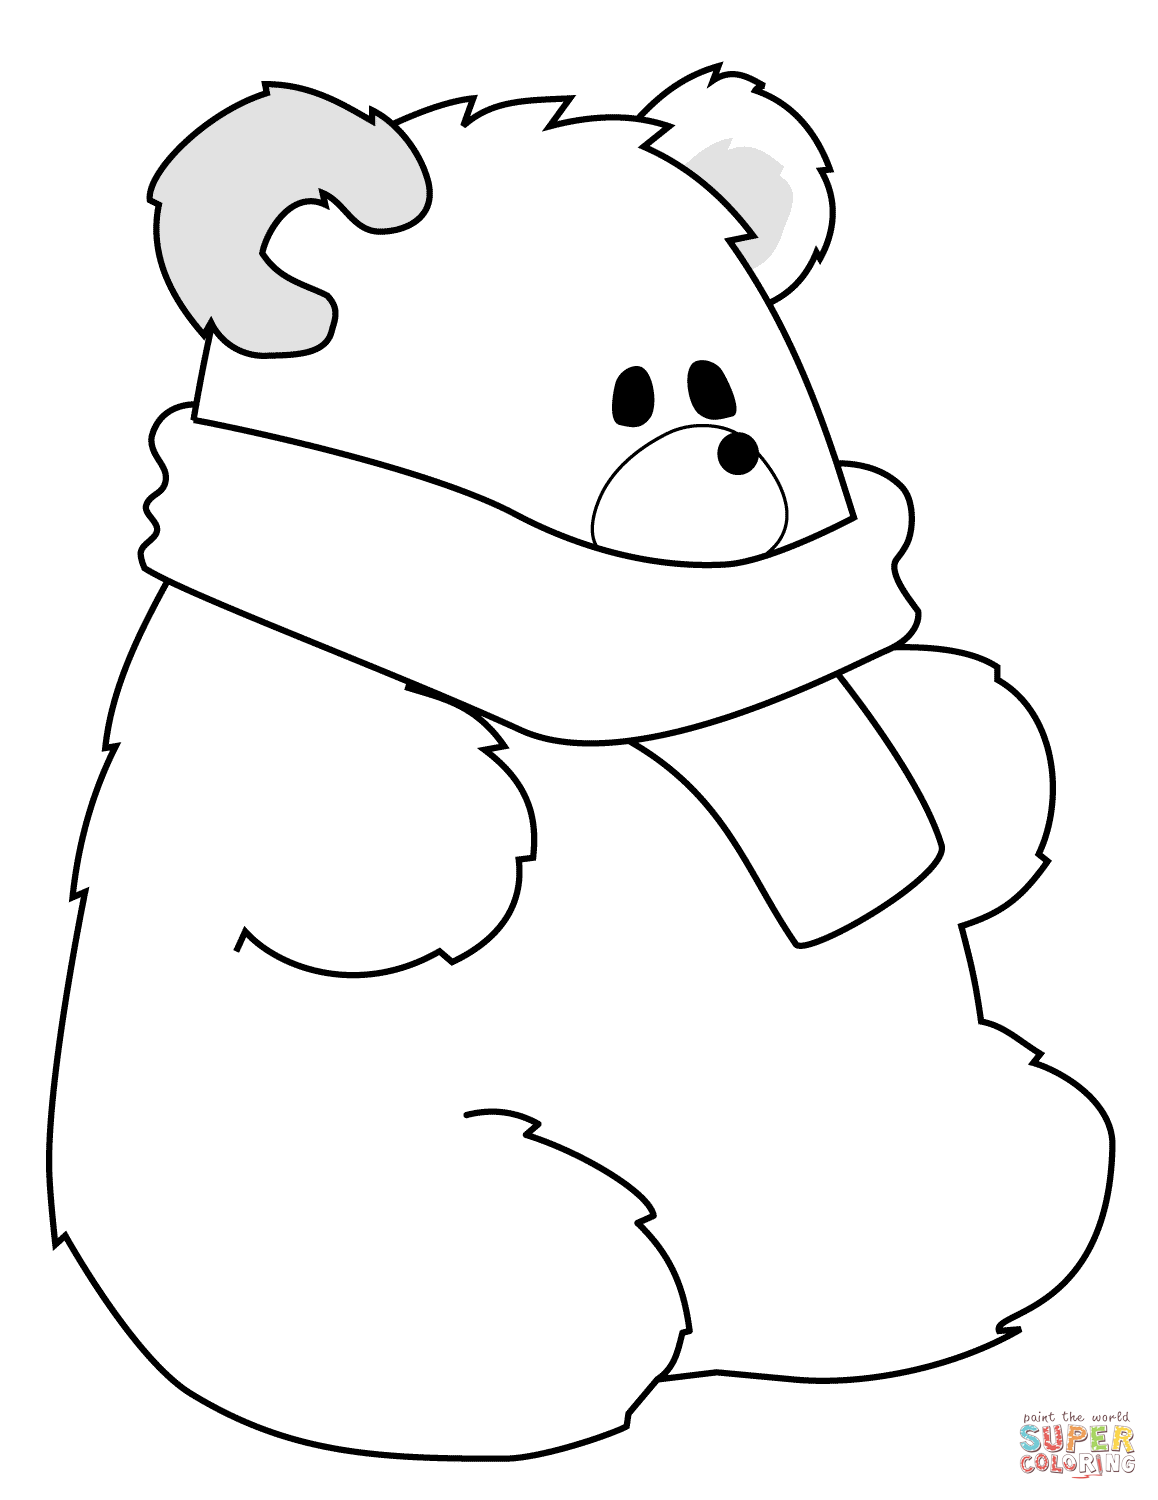 1158x1500 Coloring Pages Decorative Coloring Pages Draw A Polar Bear